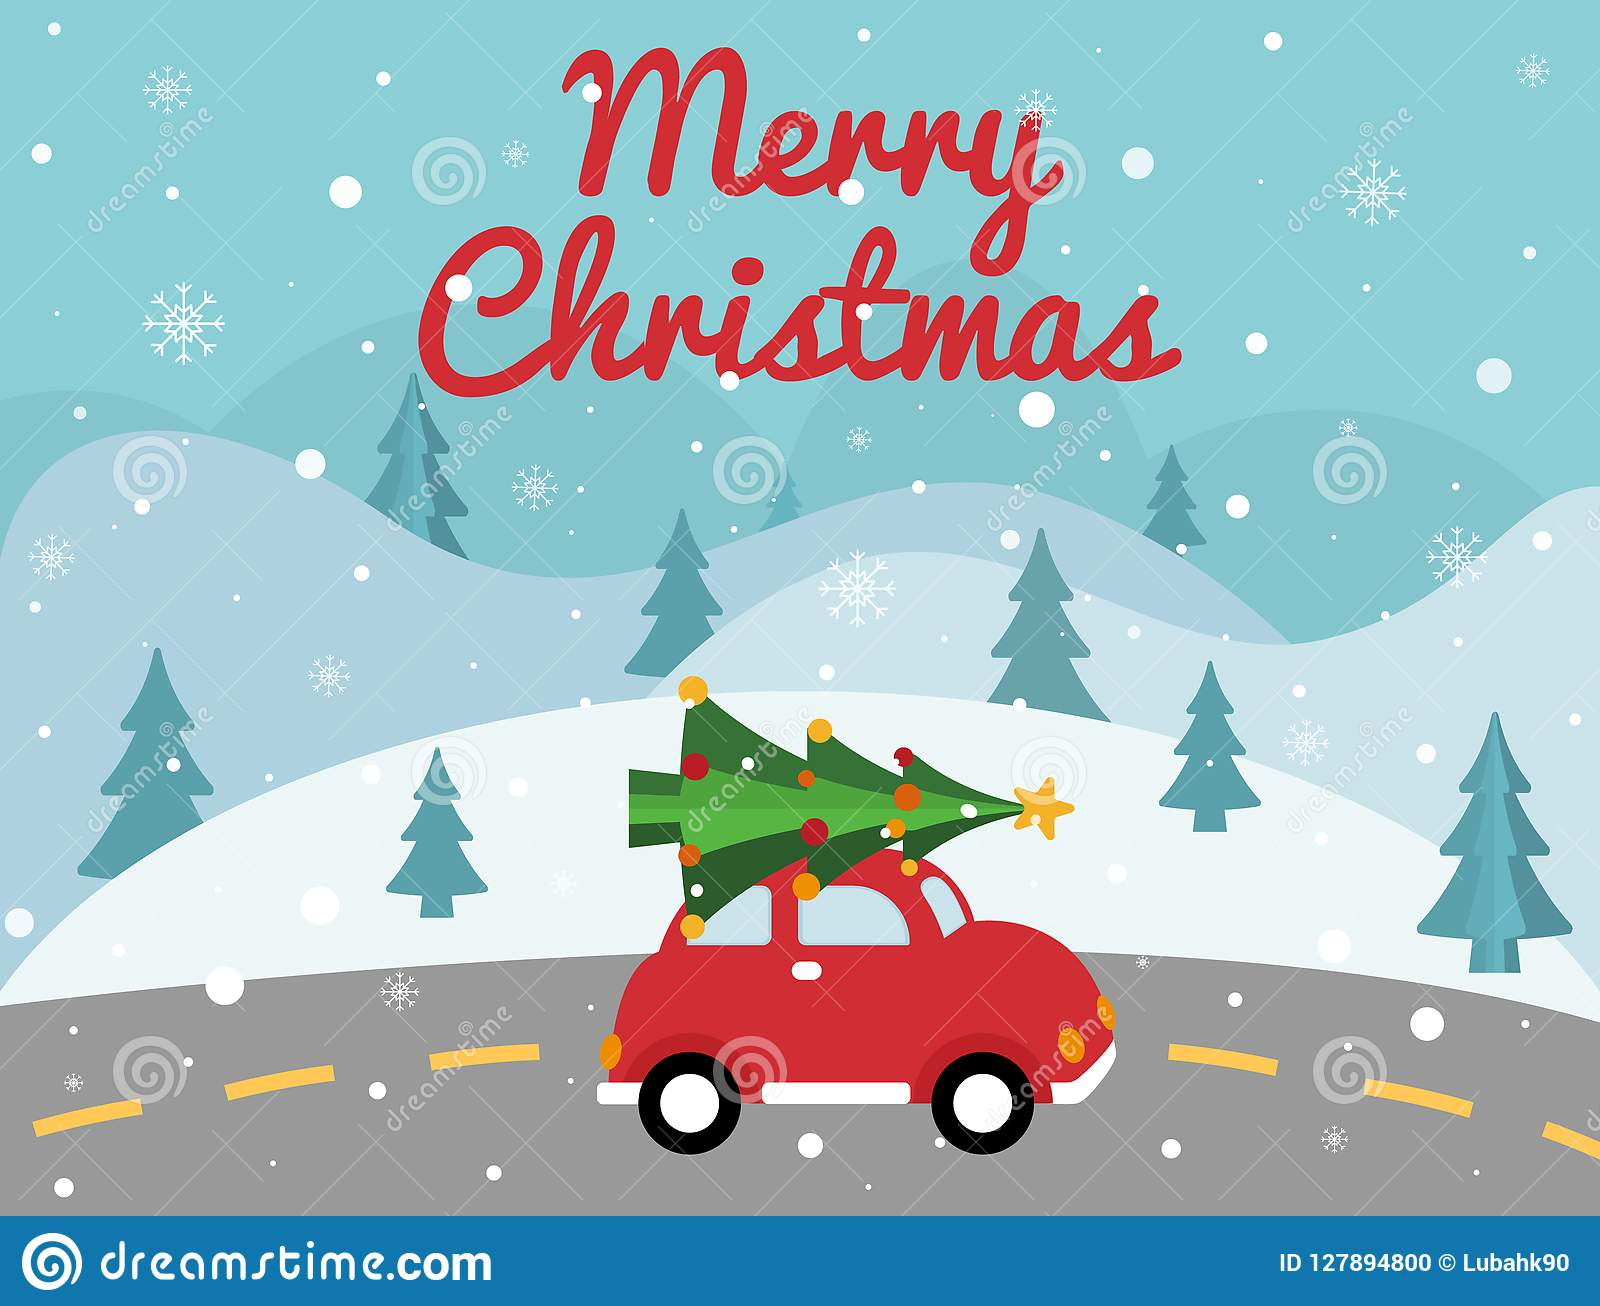 Merry Christmas Red Car With Xmas Tree On The Top. Christmas Card ...